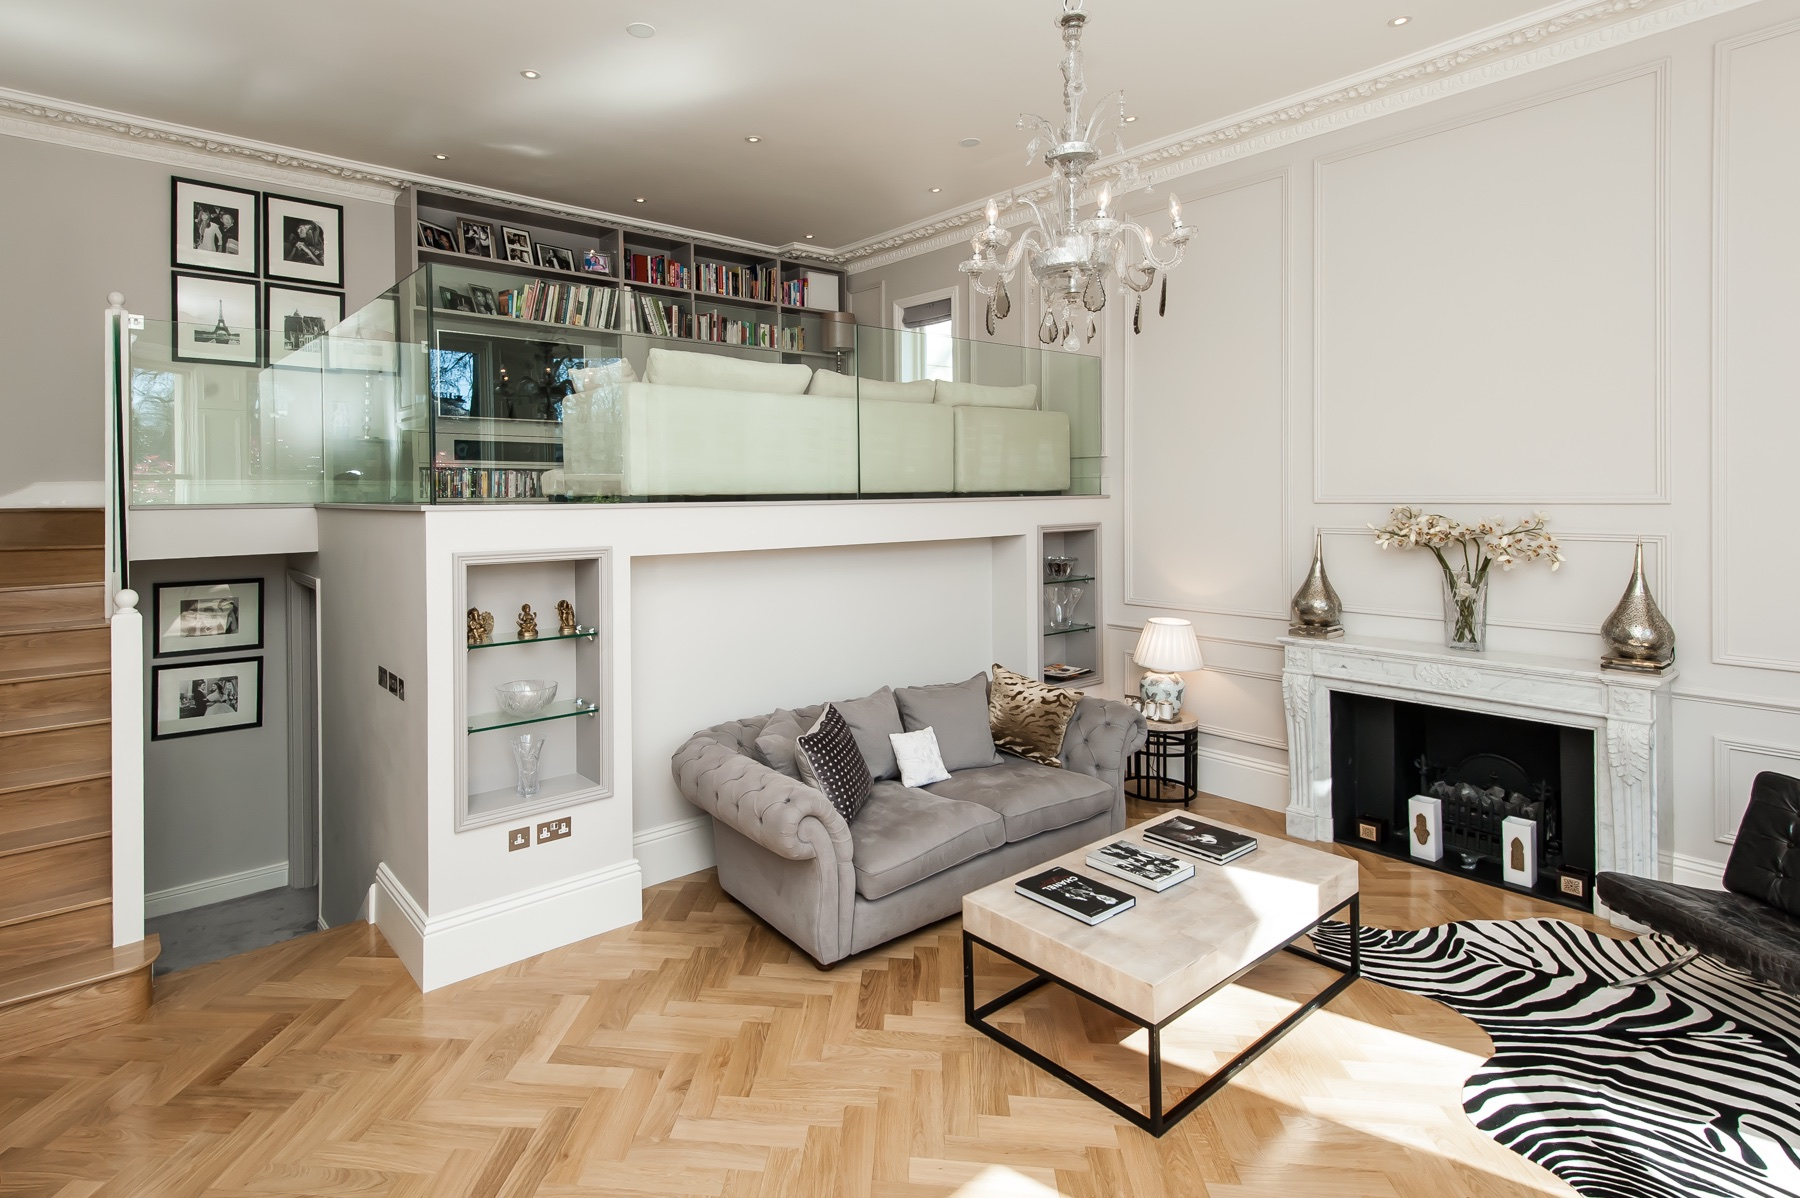 Living room and mezzanine with CK bespoke handmade built in storage and display shelving around the sofa